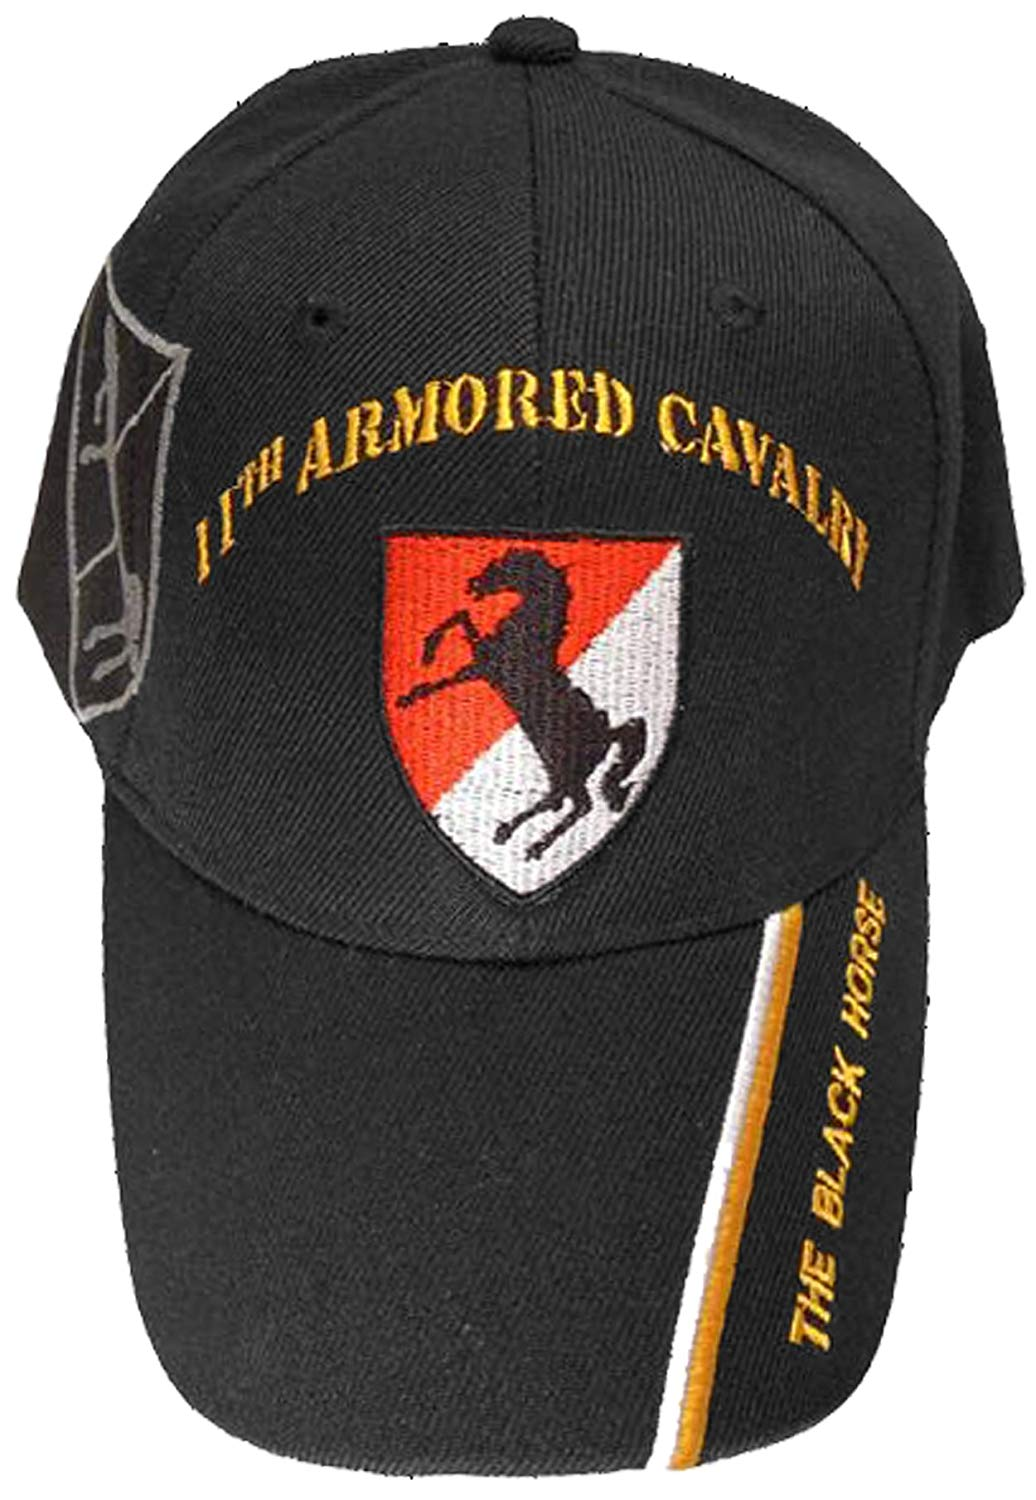 Buy Caps and Hats U.S. Army Hat and BCAH Bumper Sticker Choose Military Cap Of Division Corp Brigade Cap Infantry Airborne Armored Calvary